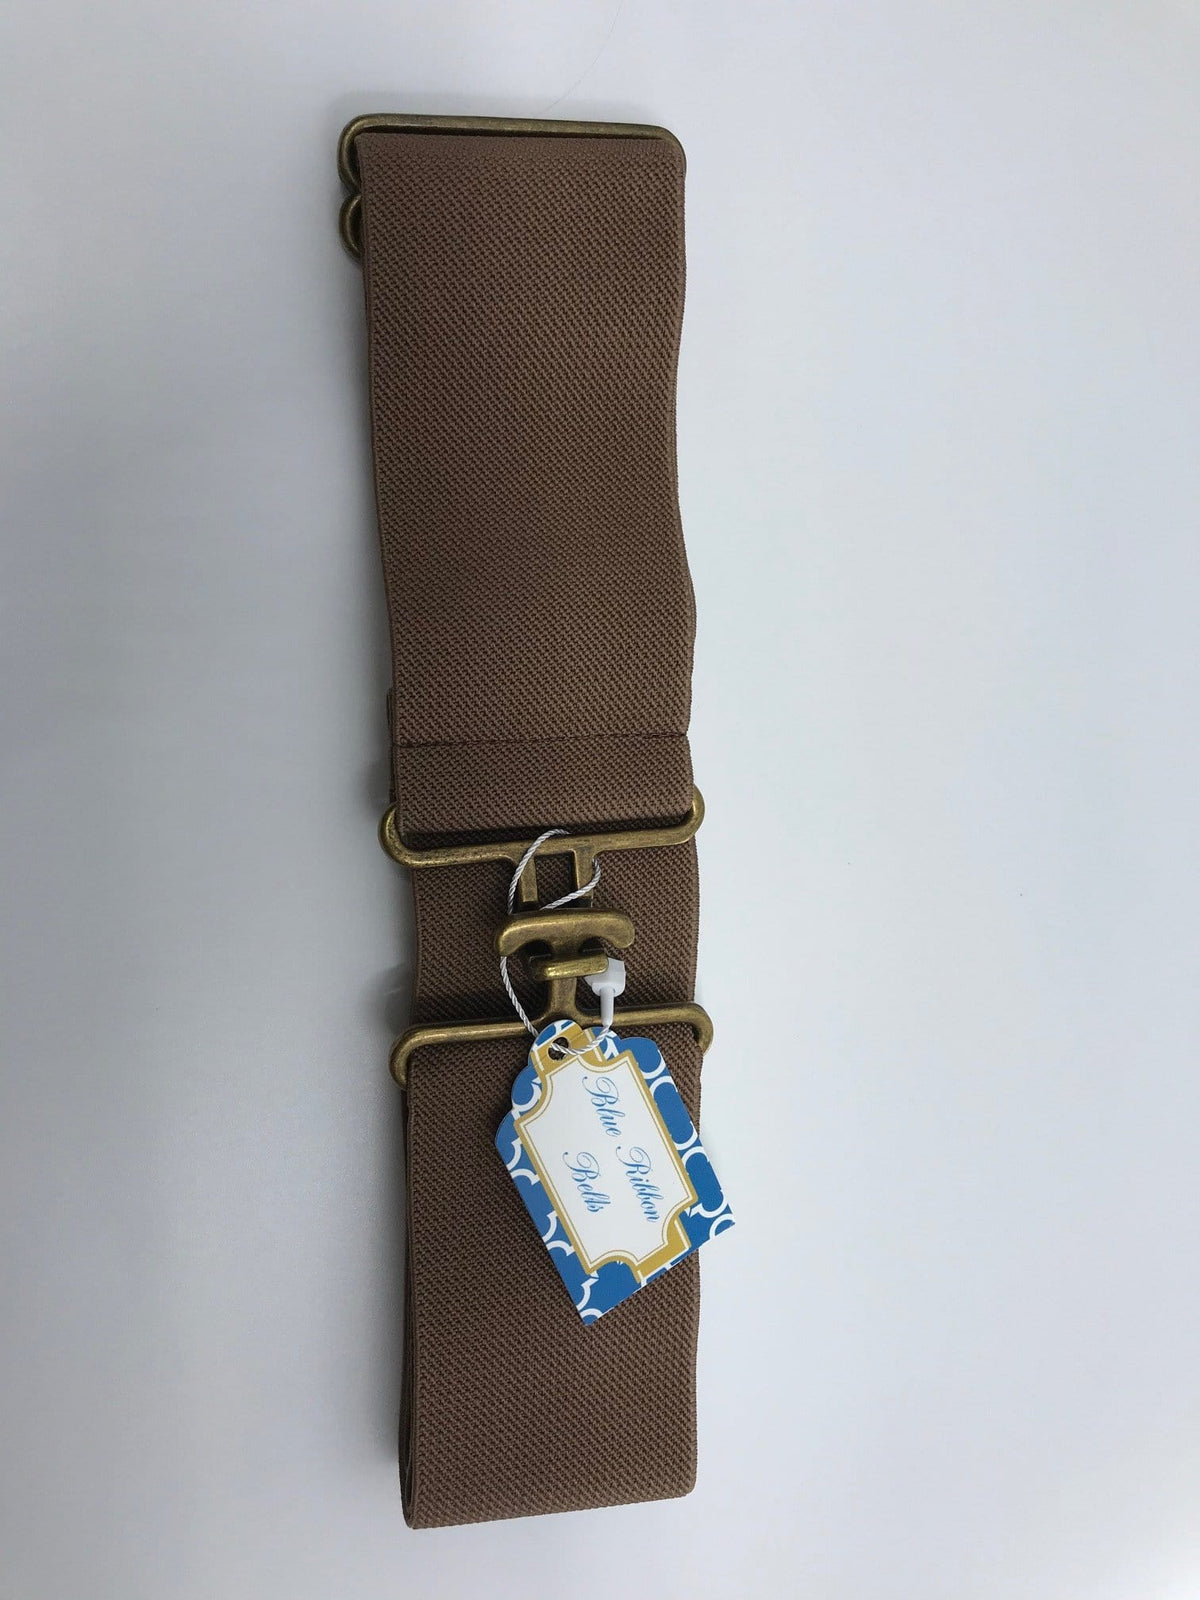 Blue Ribbon Belts Belt Chocolate Brown w Brass Blue Ribbon Belts - 2 Inch equestrian team apparel online tack store mobile tack store custom farm apparel custom show stable clothing equestrian lifestyle horse show clothing riding clothes horses equestrian tack store